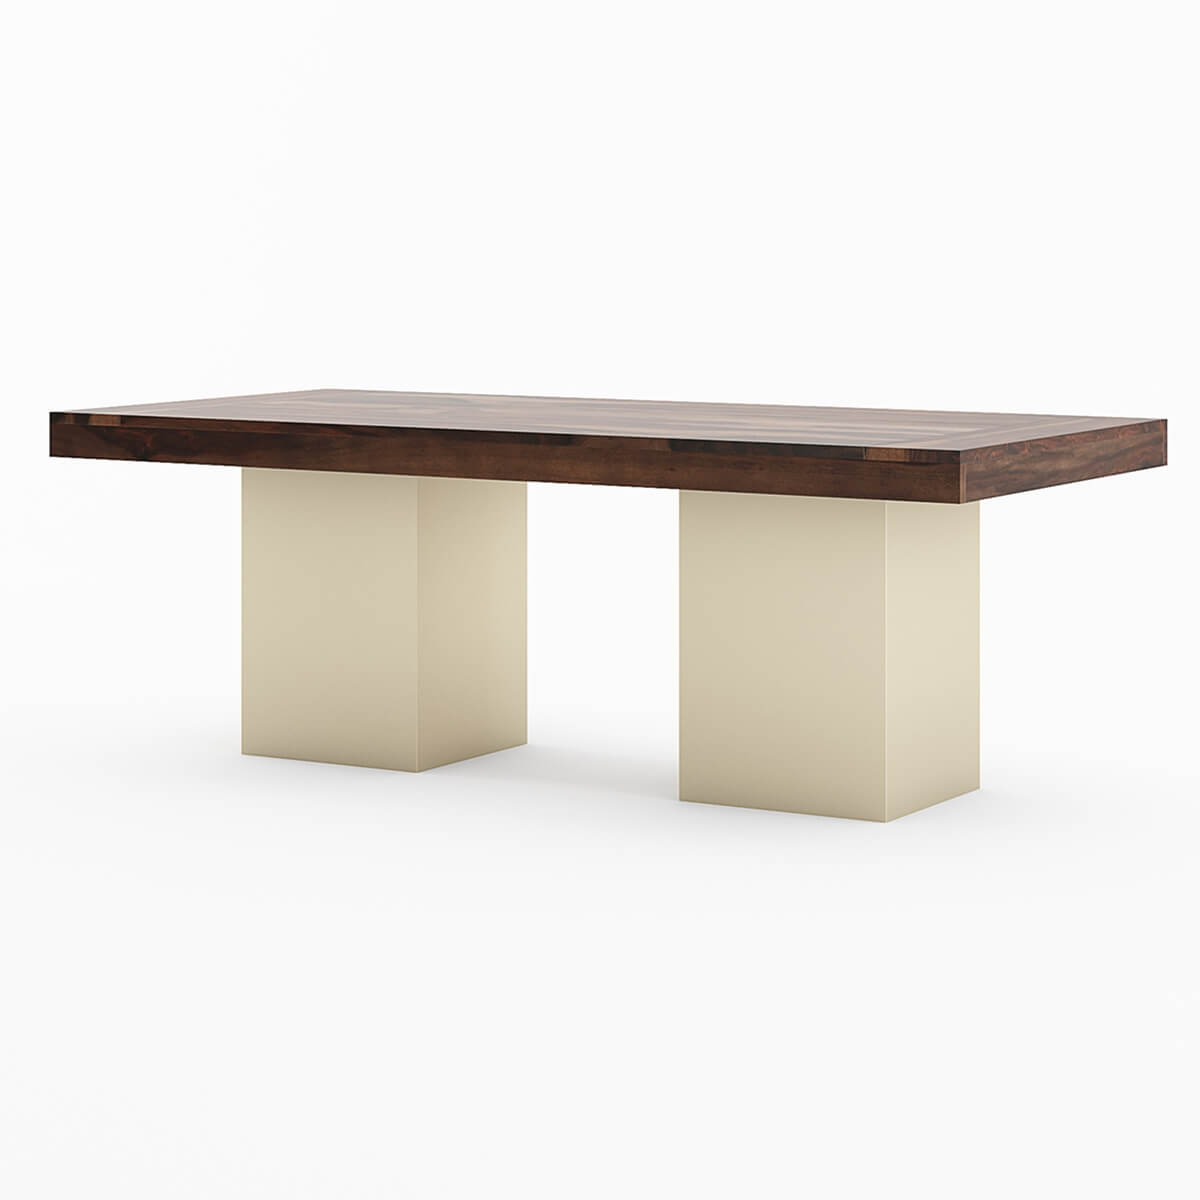 120 sierra large solid wood sutton pedestal modern dining for Wood modern dining table